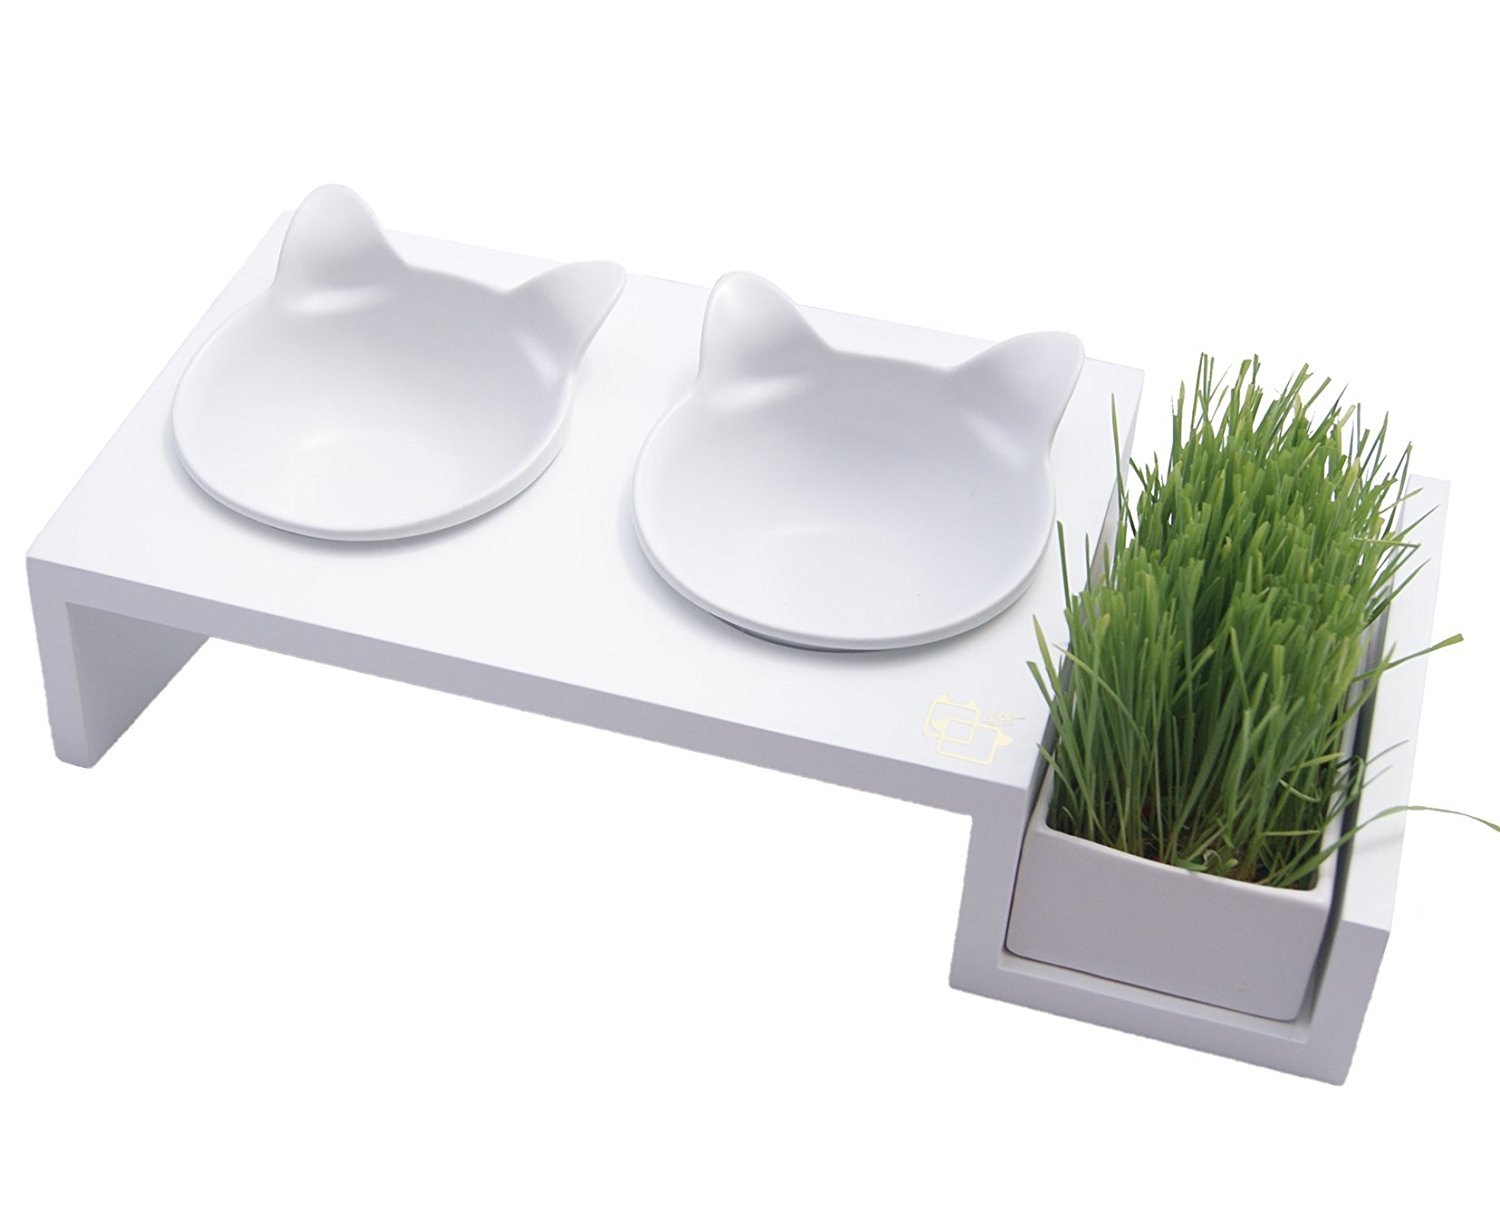 <p>From the Mykonos Collection comes the 15° tilted elevated pet feeder with a cat grass tray. Grow cat grass for your precious kitty or fill with filtered water. The tilted platform allows for easy eating and reduces stress on your pet's joints.{&amp;nbsp;} The hand crafted ceramic bowls are heat and dishwasher safe. Find it on Amazon. (Image: Amazon)</p>